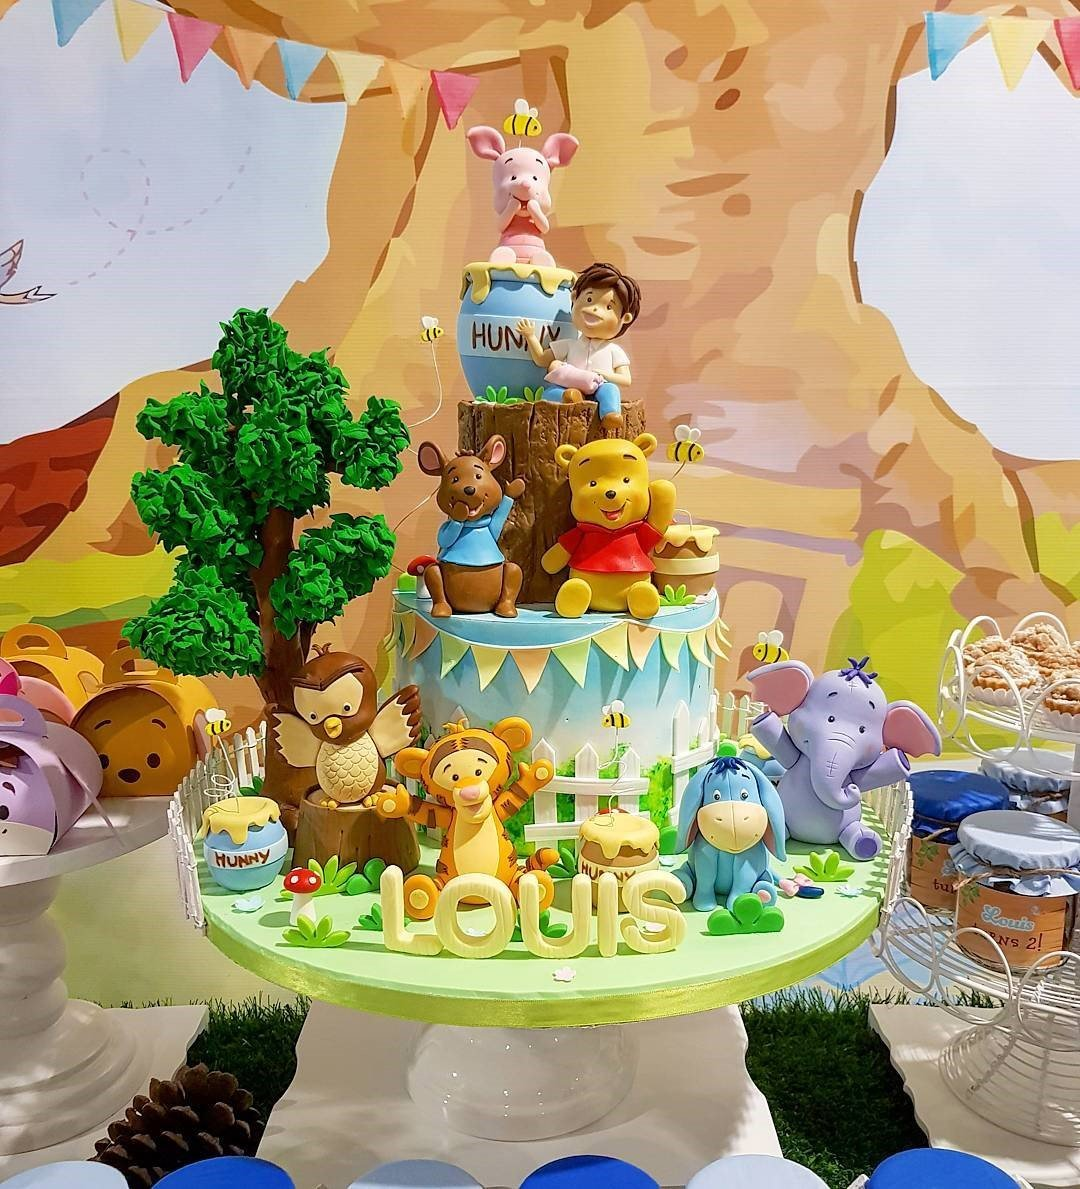 Winnie the pooh and his friend cake kids' birthday party dubai